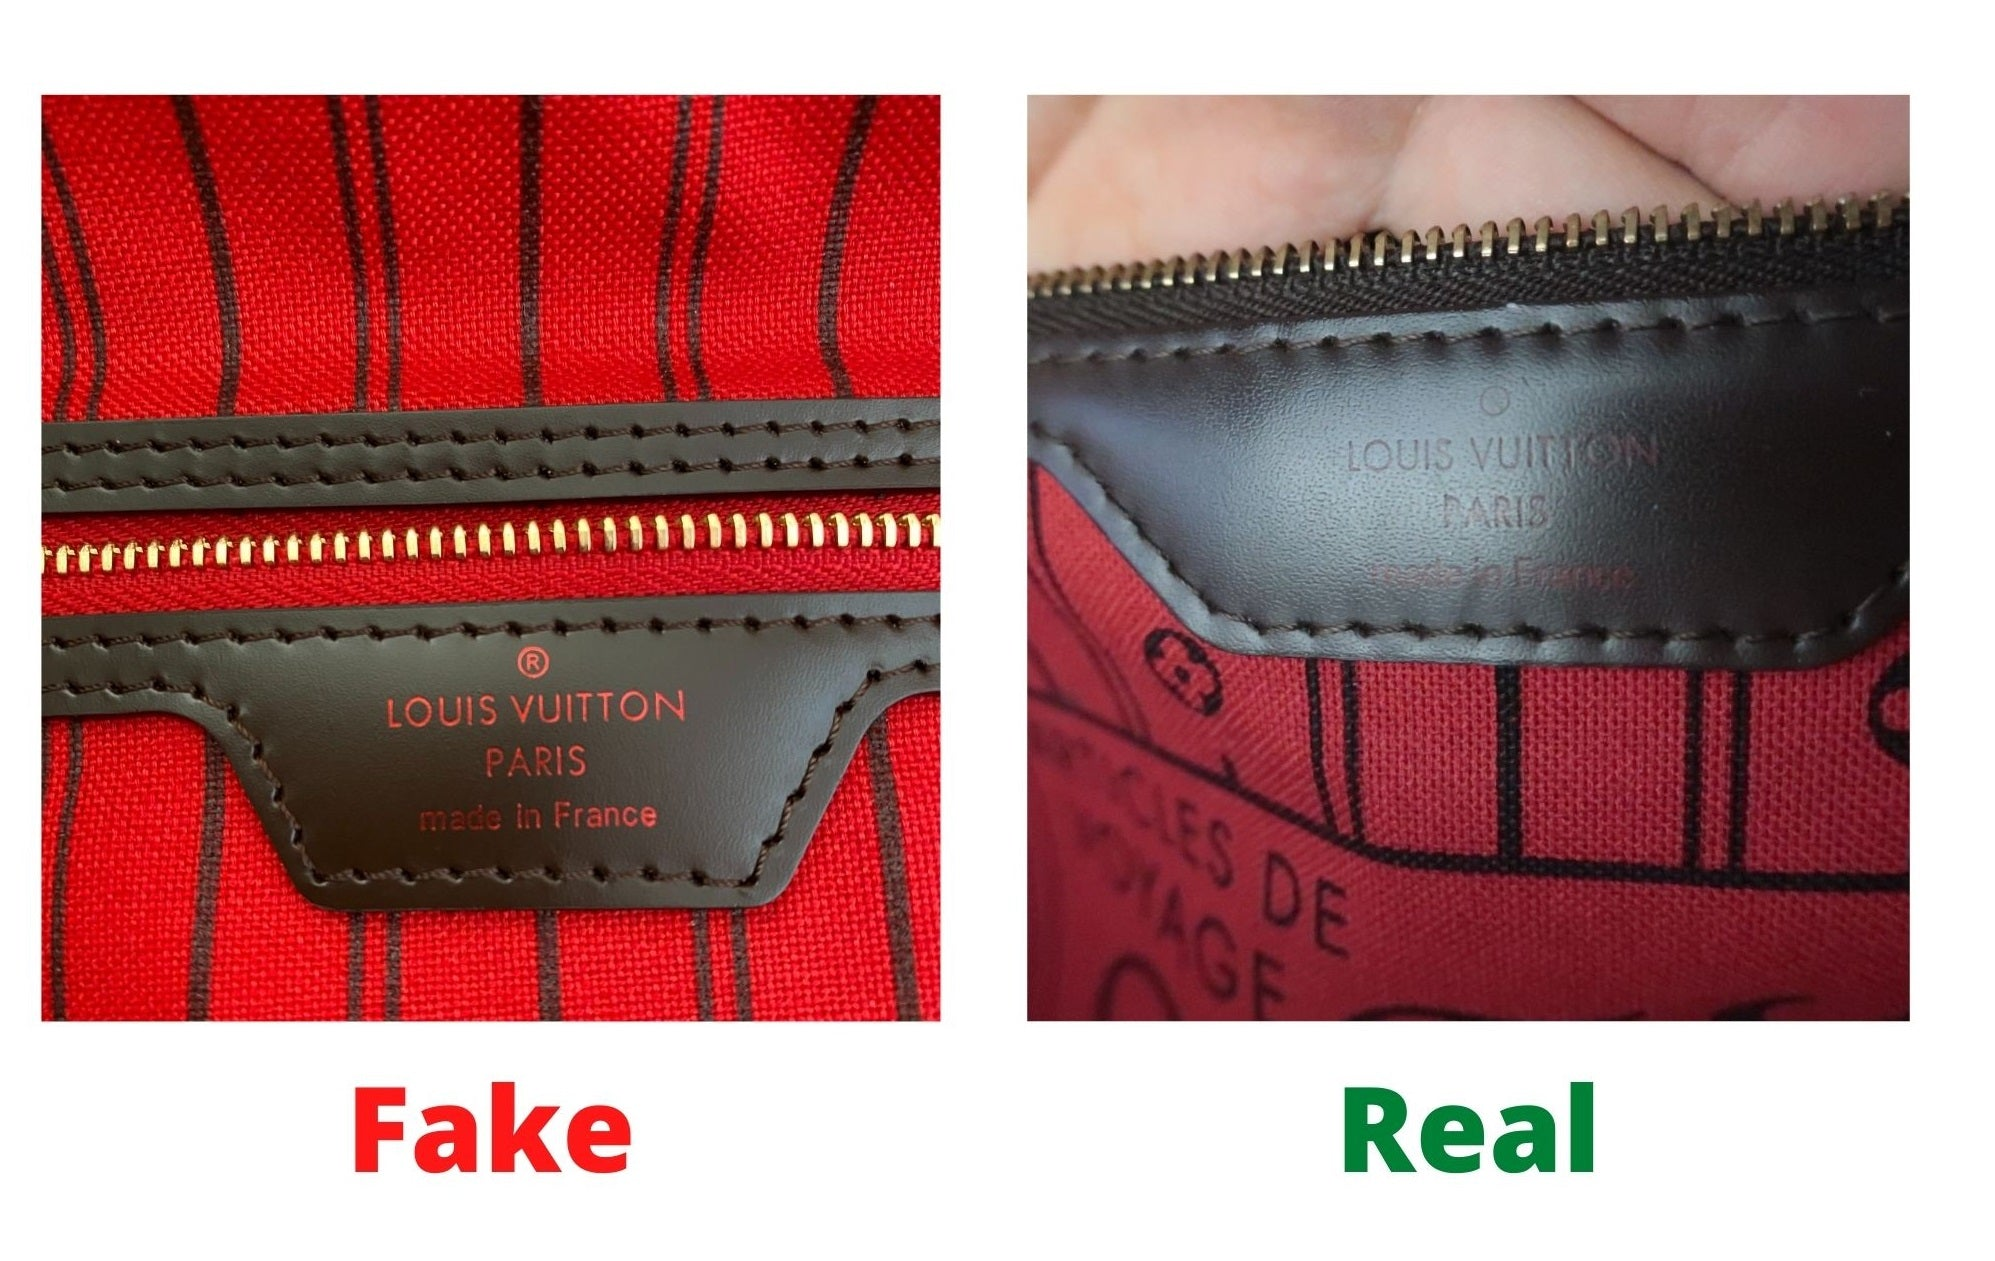 Fake Louis Vuitton Neverfull vs Real: Important Details You Should Definitely Pay Attention To (With Photo Examples) neverfull damier ebene fake vs real heat stamp